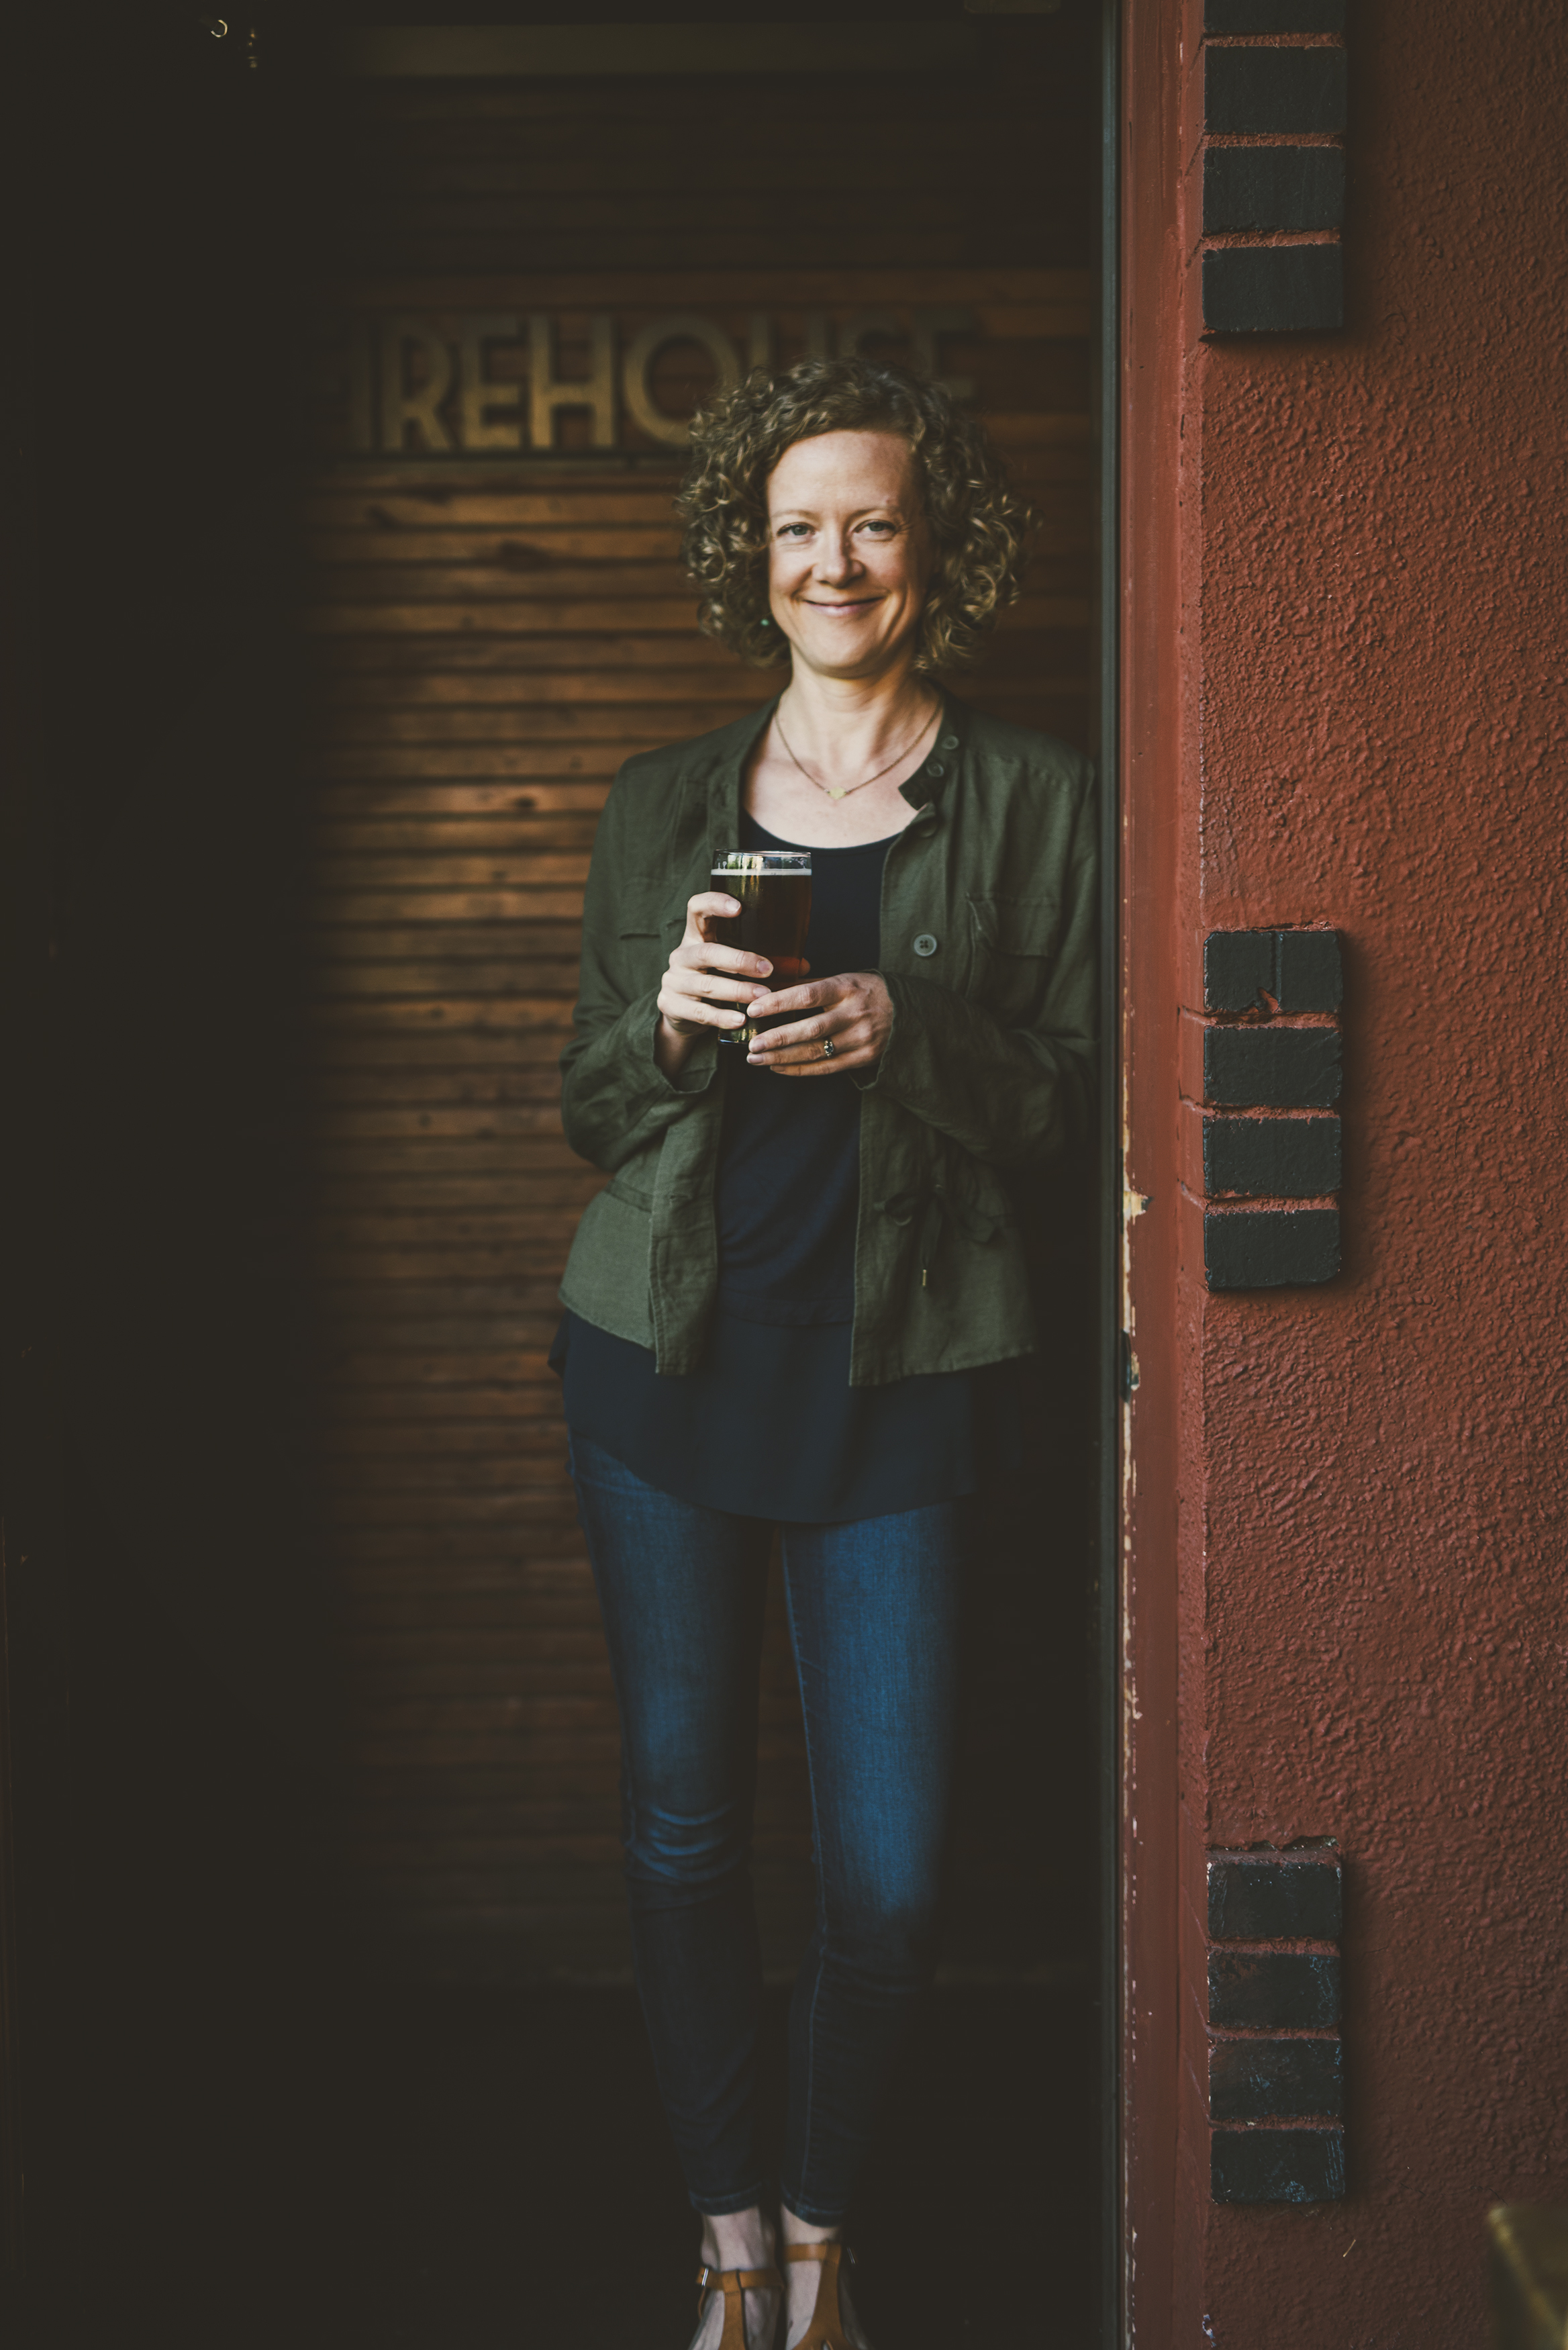 Lucy Burningham, author of My Beer Year. (photo courtesy of Anna Caitlin Photography)